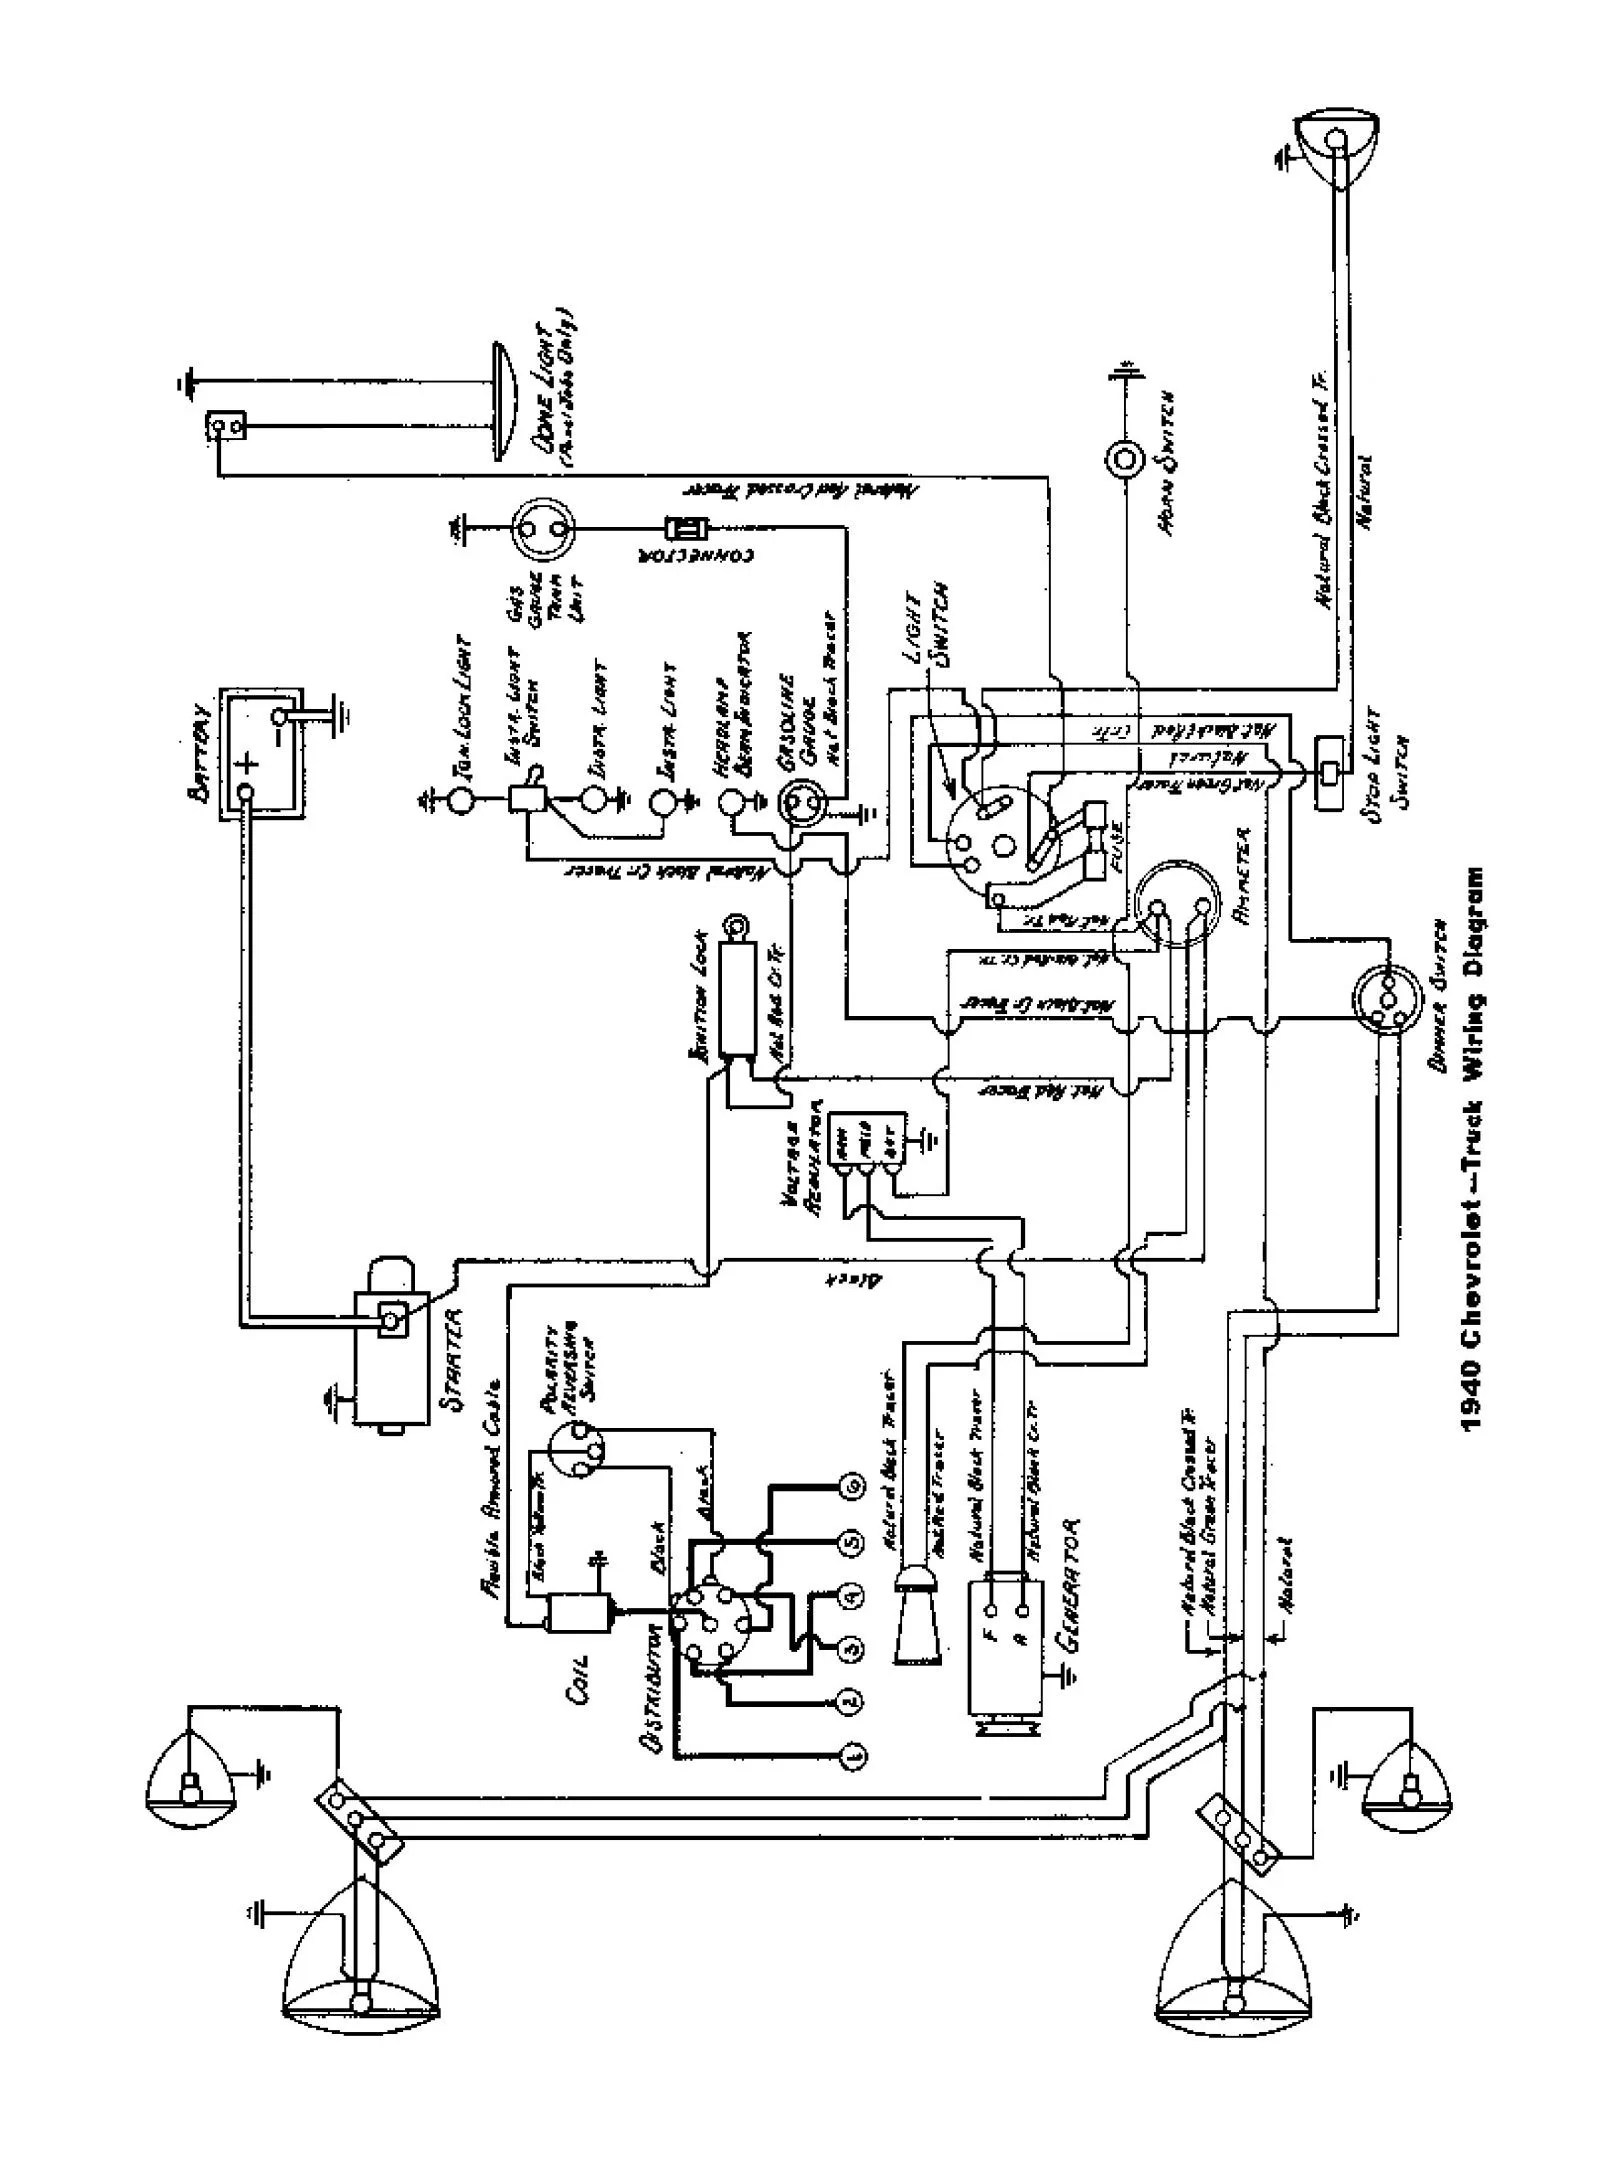 hight resolution of 1938 buick wiring diagram wiring diagram blog 1938 buick wiring diagram